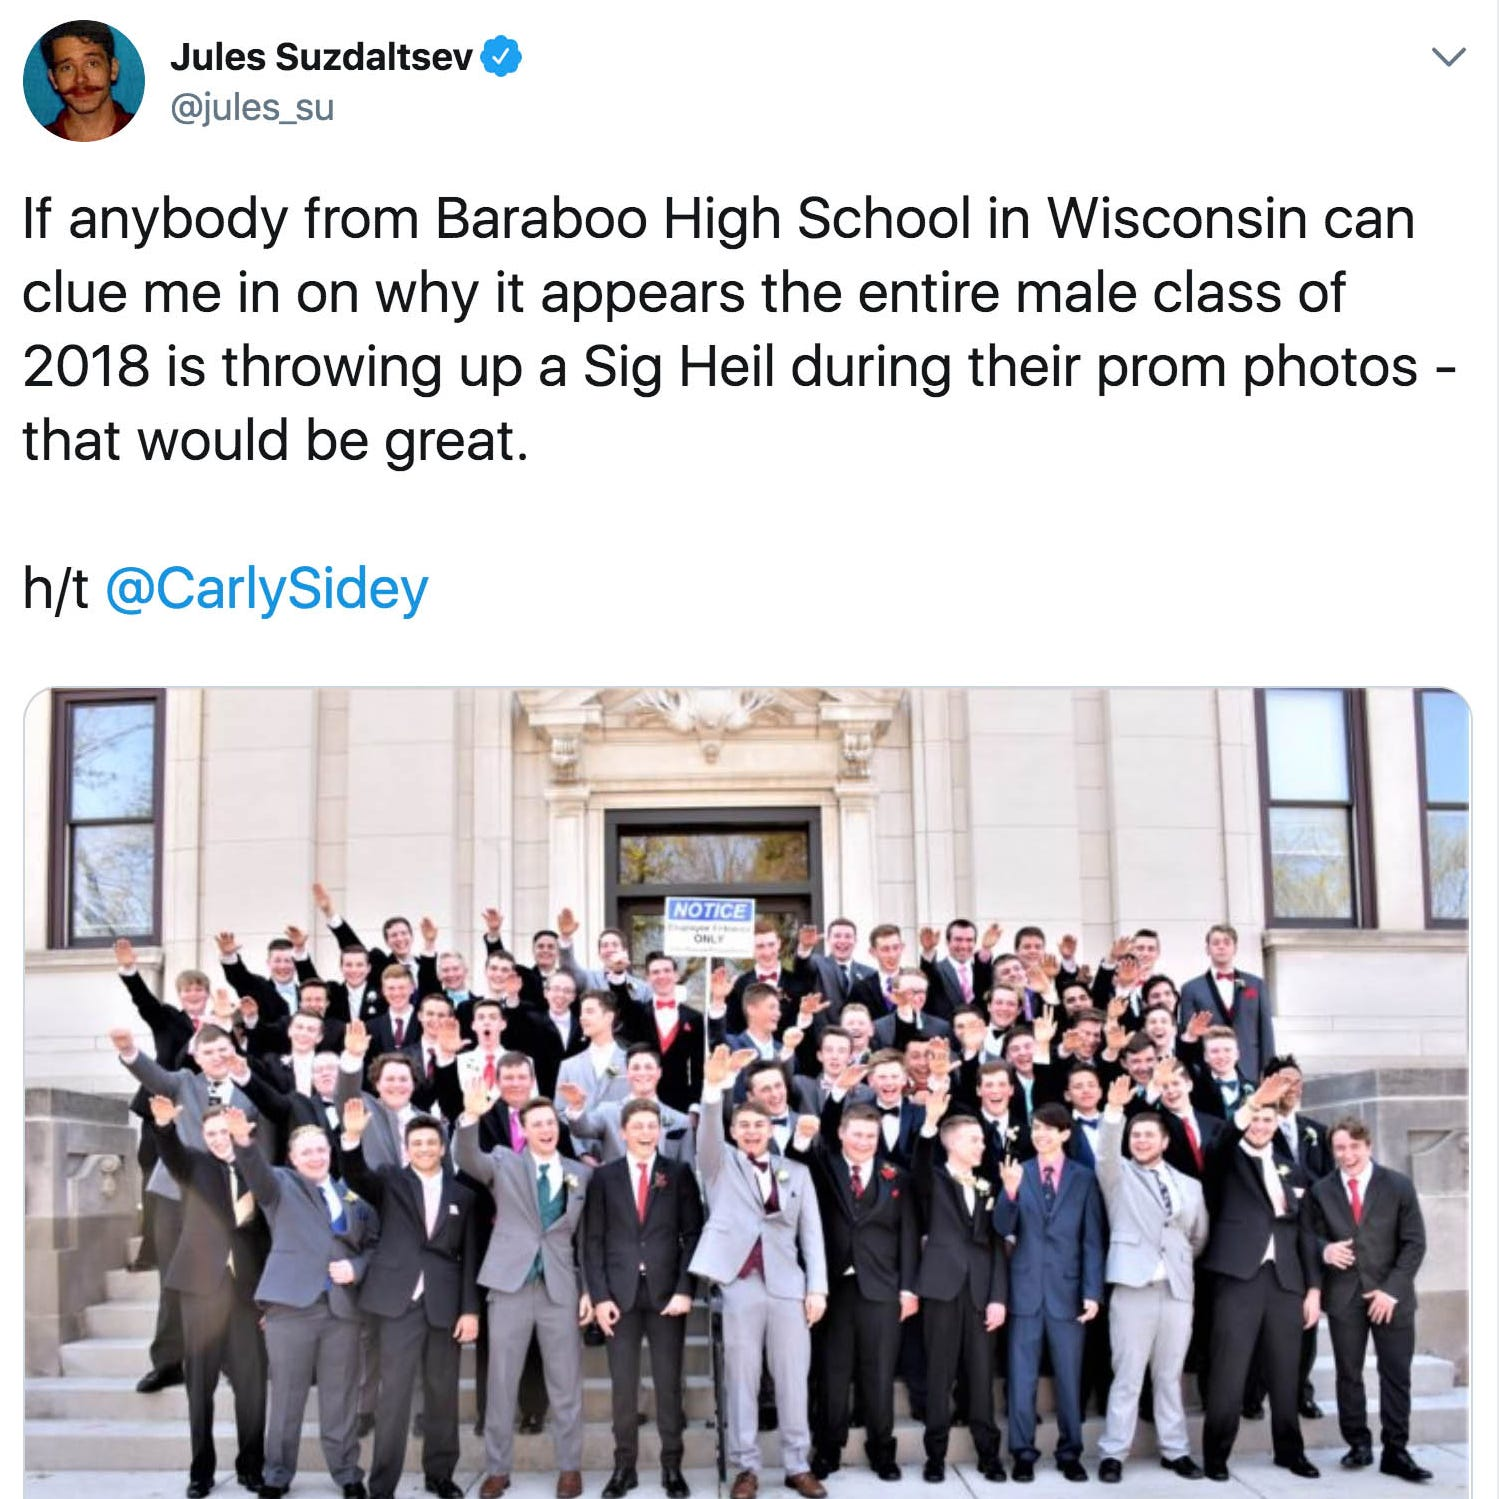 Fallout continues for Baraboo students in wake of photo showing what looks like Nazi salute